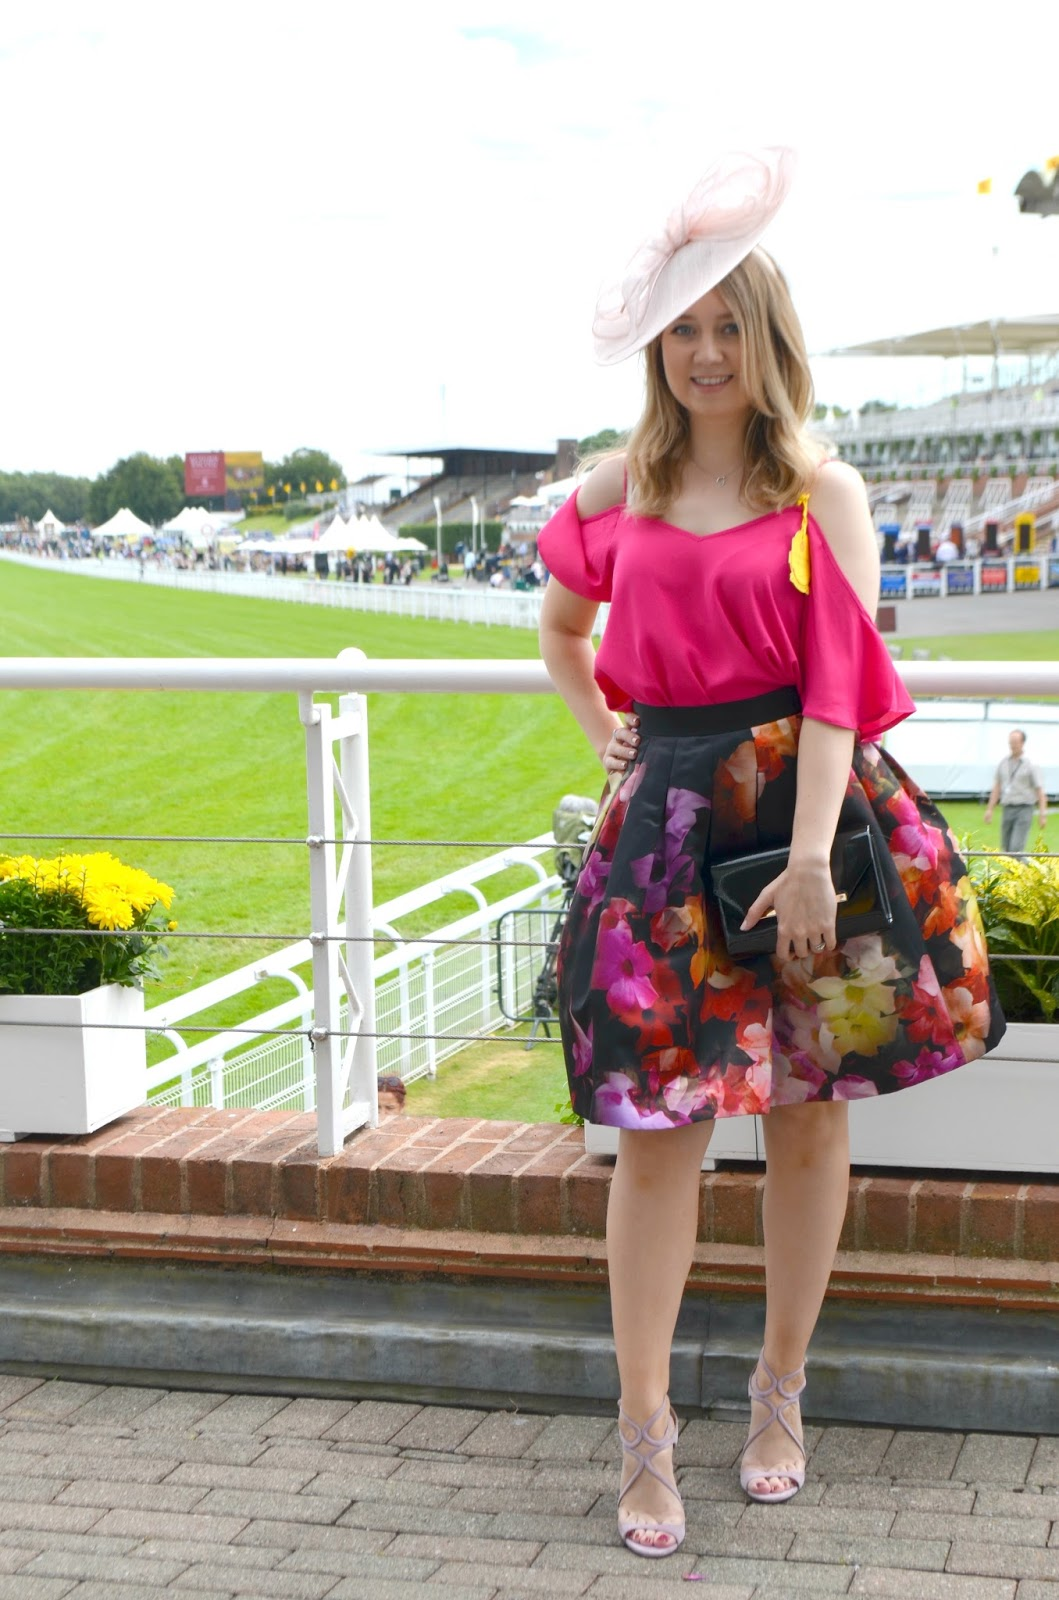 Goodwood Races